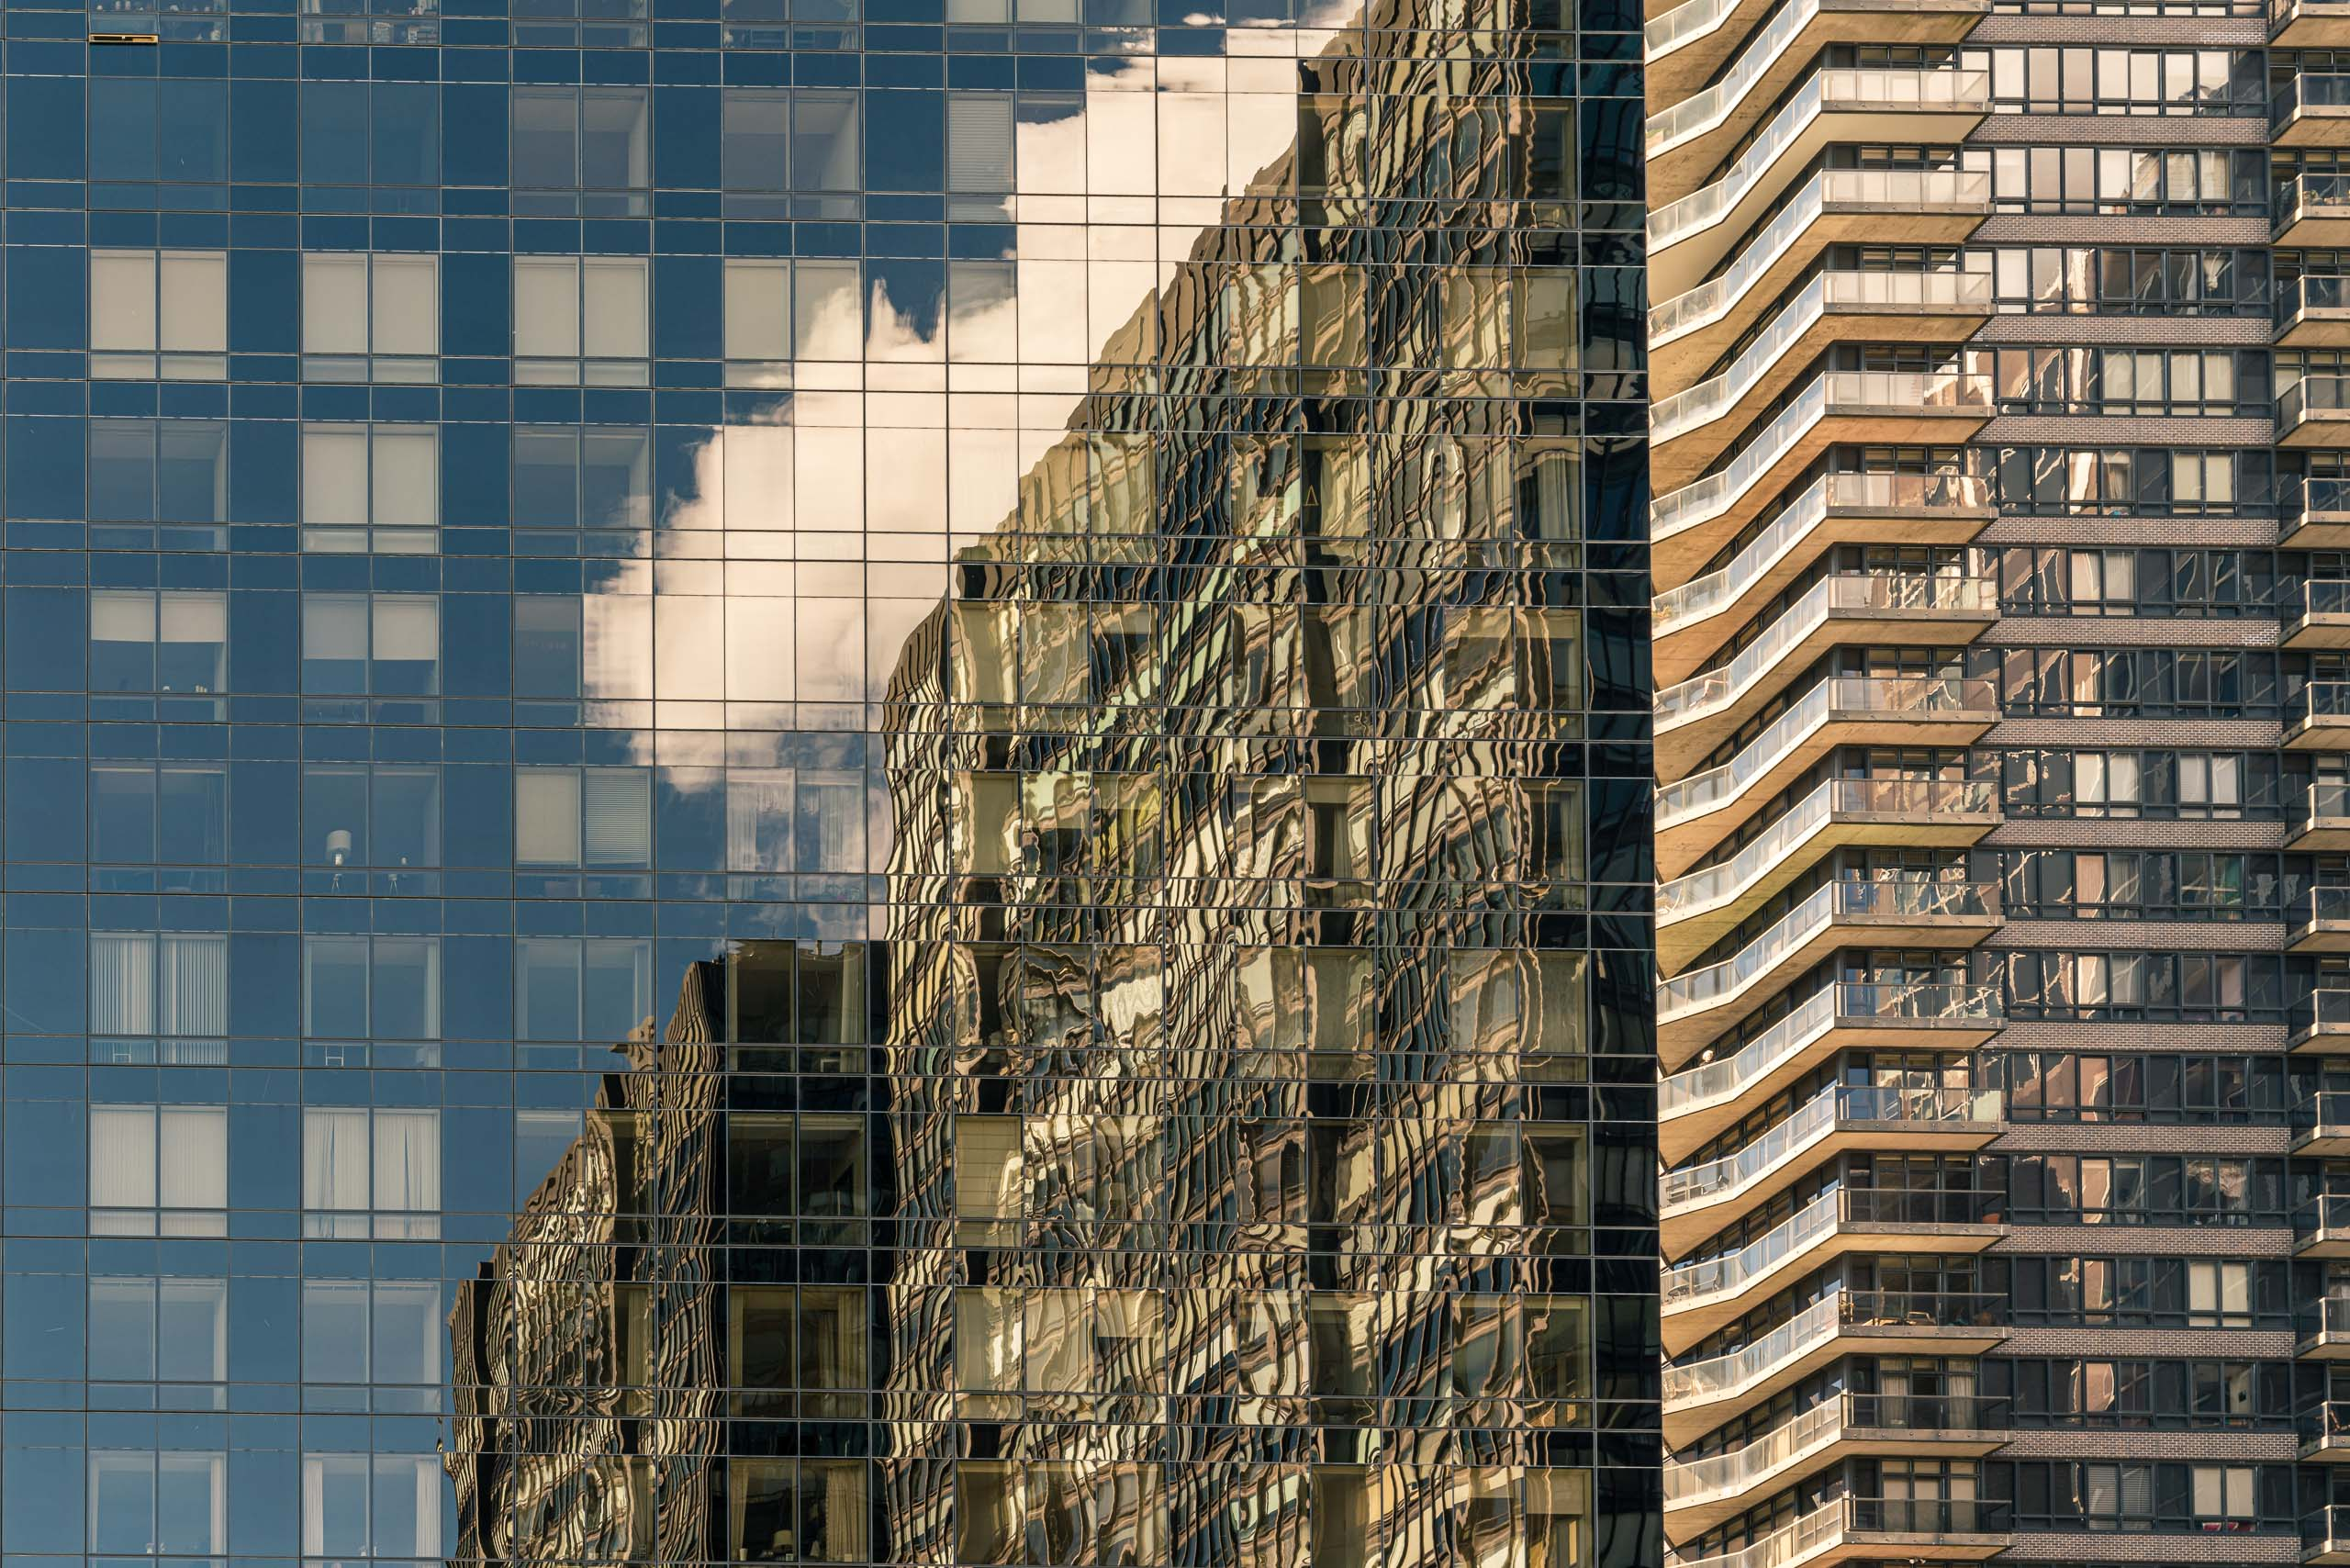 Travel and street photography of architectural reflections of clouds found in New York City USA made by New York photographer Mary Catherine Messner (mcmessner).